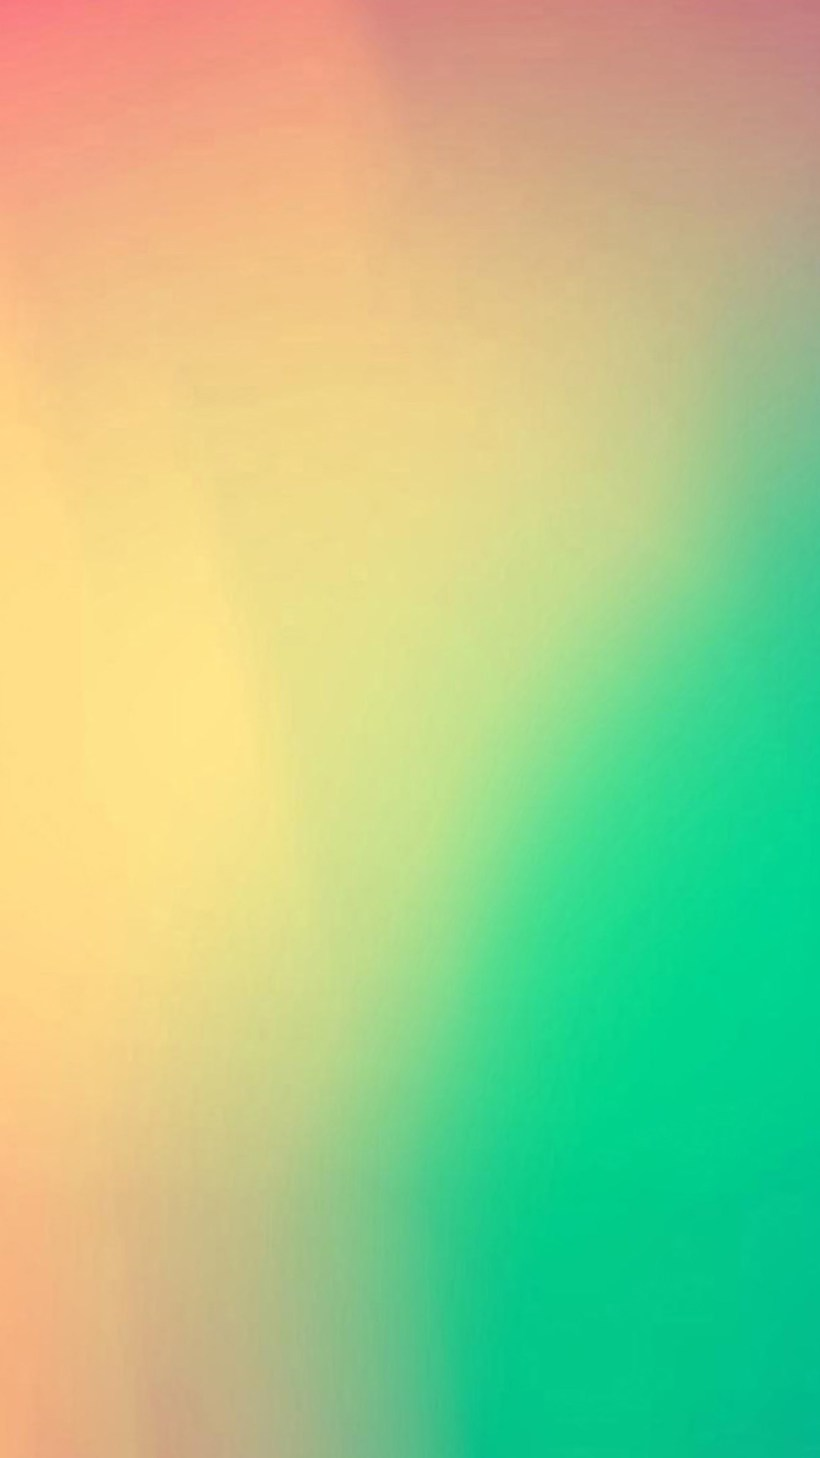 Green Color Wallpaper Hd For Mobile | Bedwalls.co